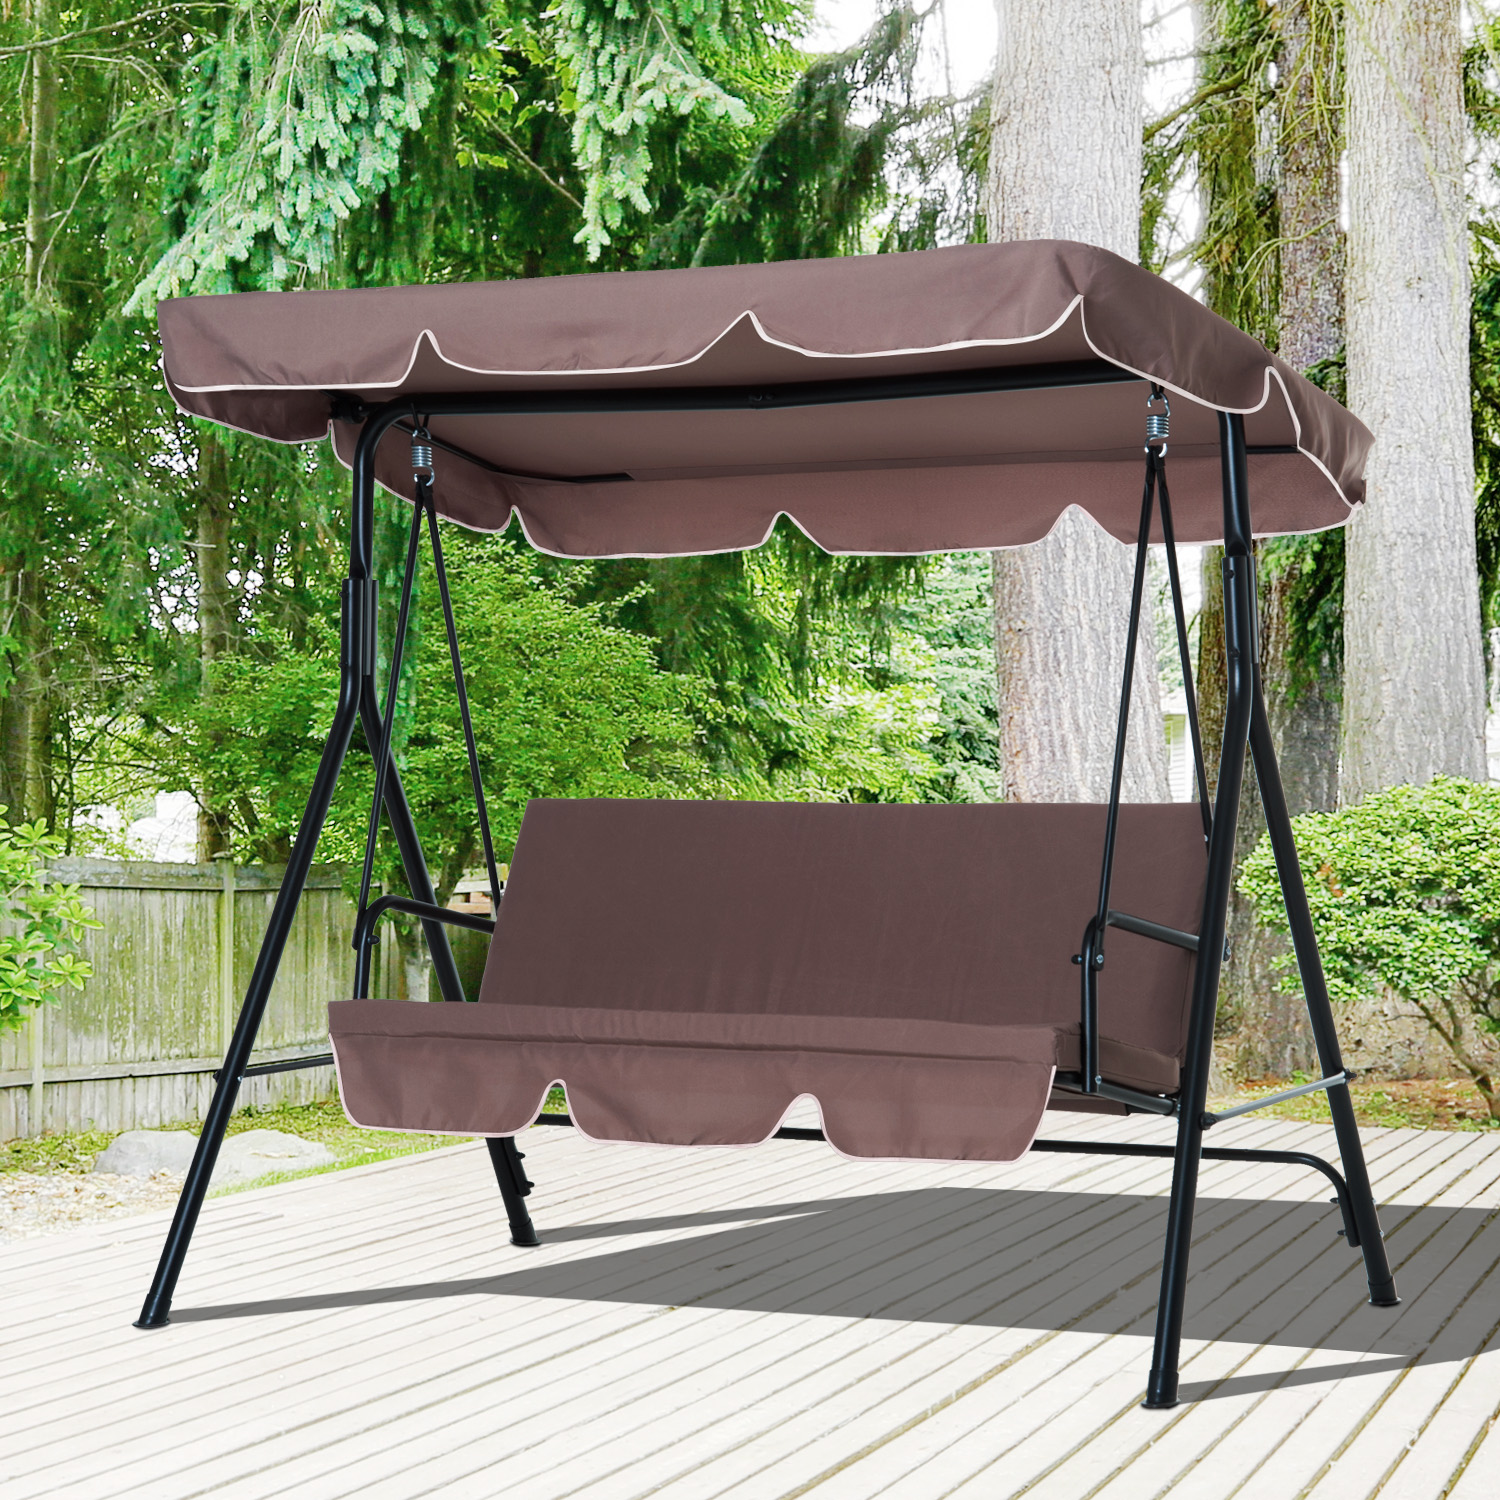 Image of £72.99 Outsunny Swing Chair 3-Seater Cushioned Bench-Brown / Garden Patio 3 Seater Swinging Hammock Canopy Outdoor Bench Bed Seat (Brown) Metal Lounger New 84A-001BN 5055974822610